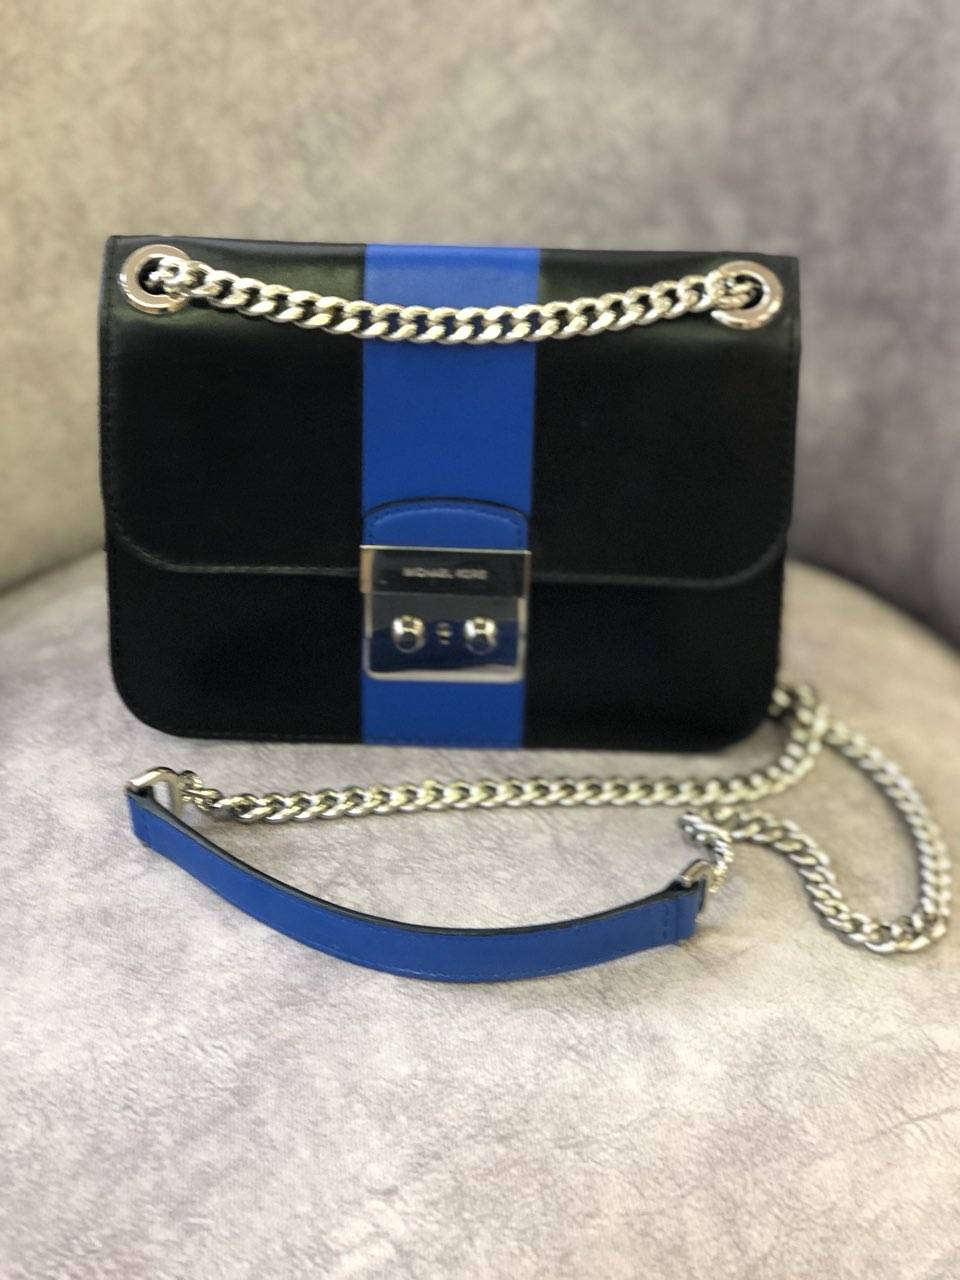 "Michael Kors, BlueBlk, Authentic<br /> SHOW YOUR SUPPORT FOR LAW ENFORCEMENT<br /> Black and Blue Stripe Leather Cross Body Bag<br /> SIZE:  8""L x 2""W x 6""H<br /> Est. Retail Price: $300.00<br /> CONDITION:  Pre-owned<br /> This item may has been worn but has little visible signs of wear.<br /> Stuffing and white drawstring bag come with it.<br /> I love this handbag!<br /> A Great bag to carry and support our law enforcement officers."